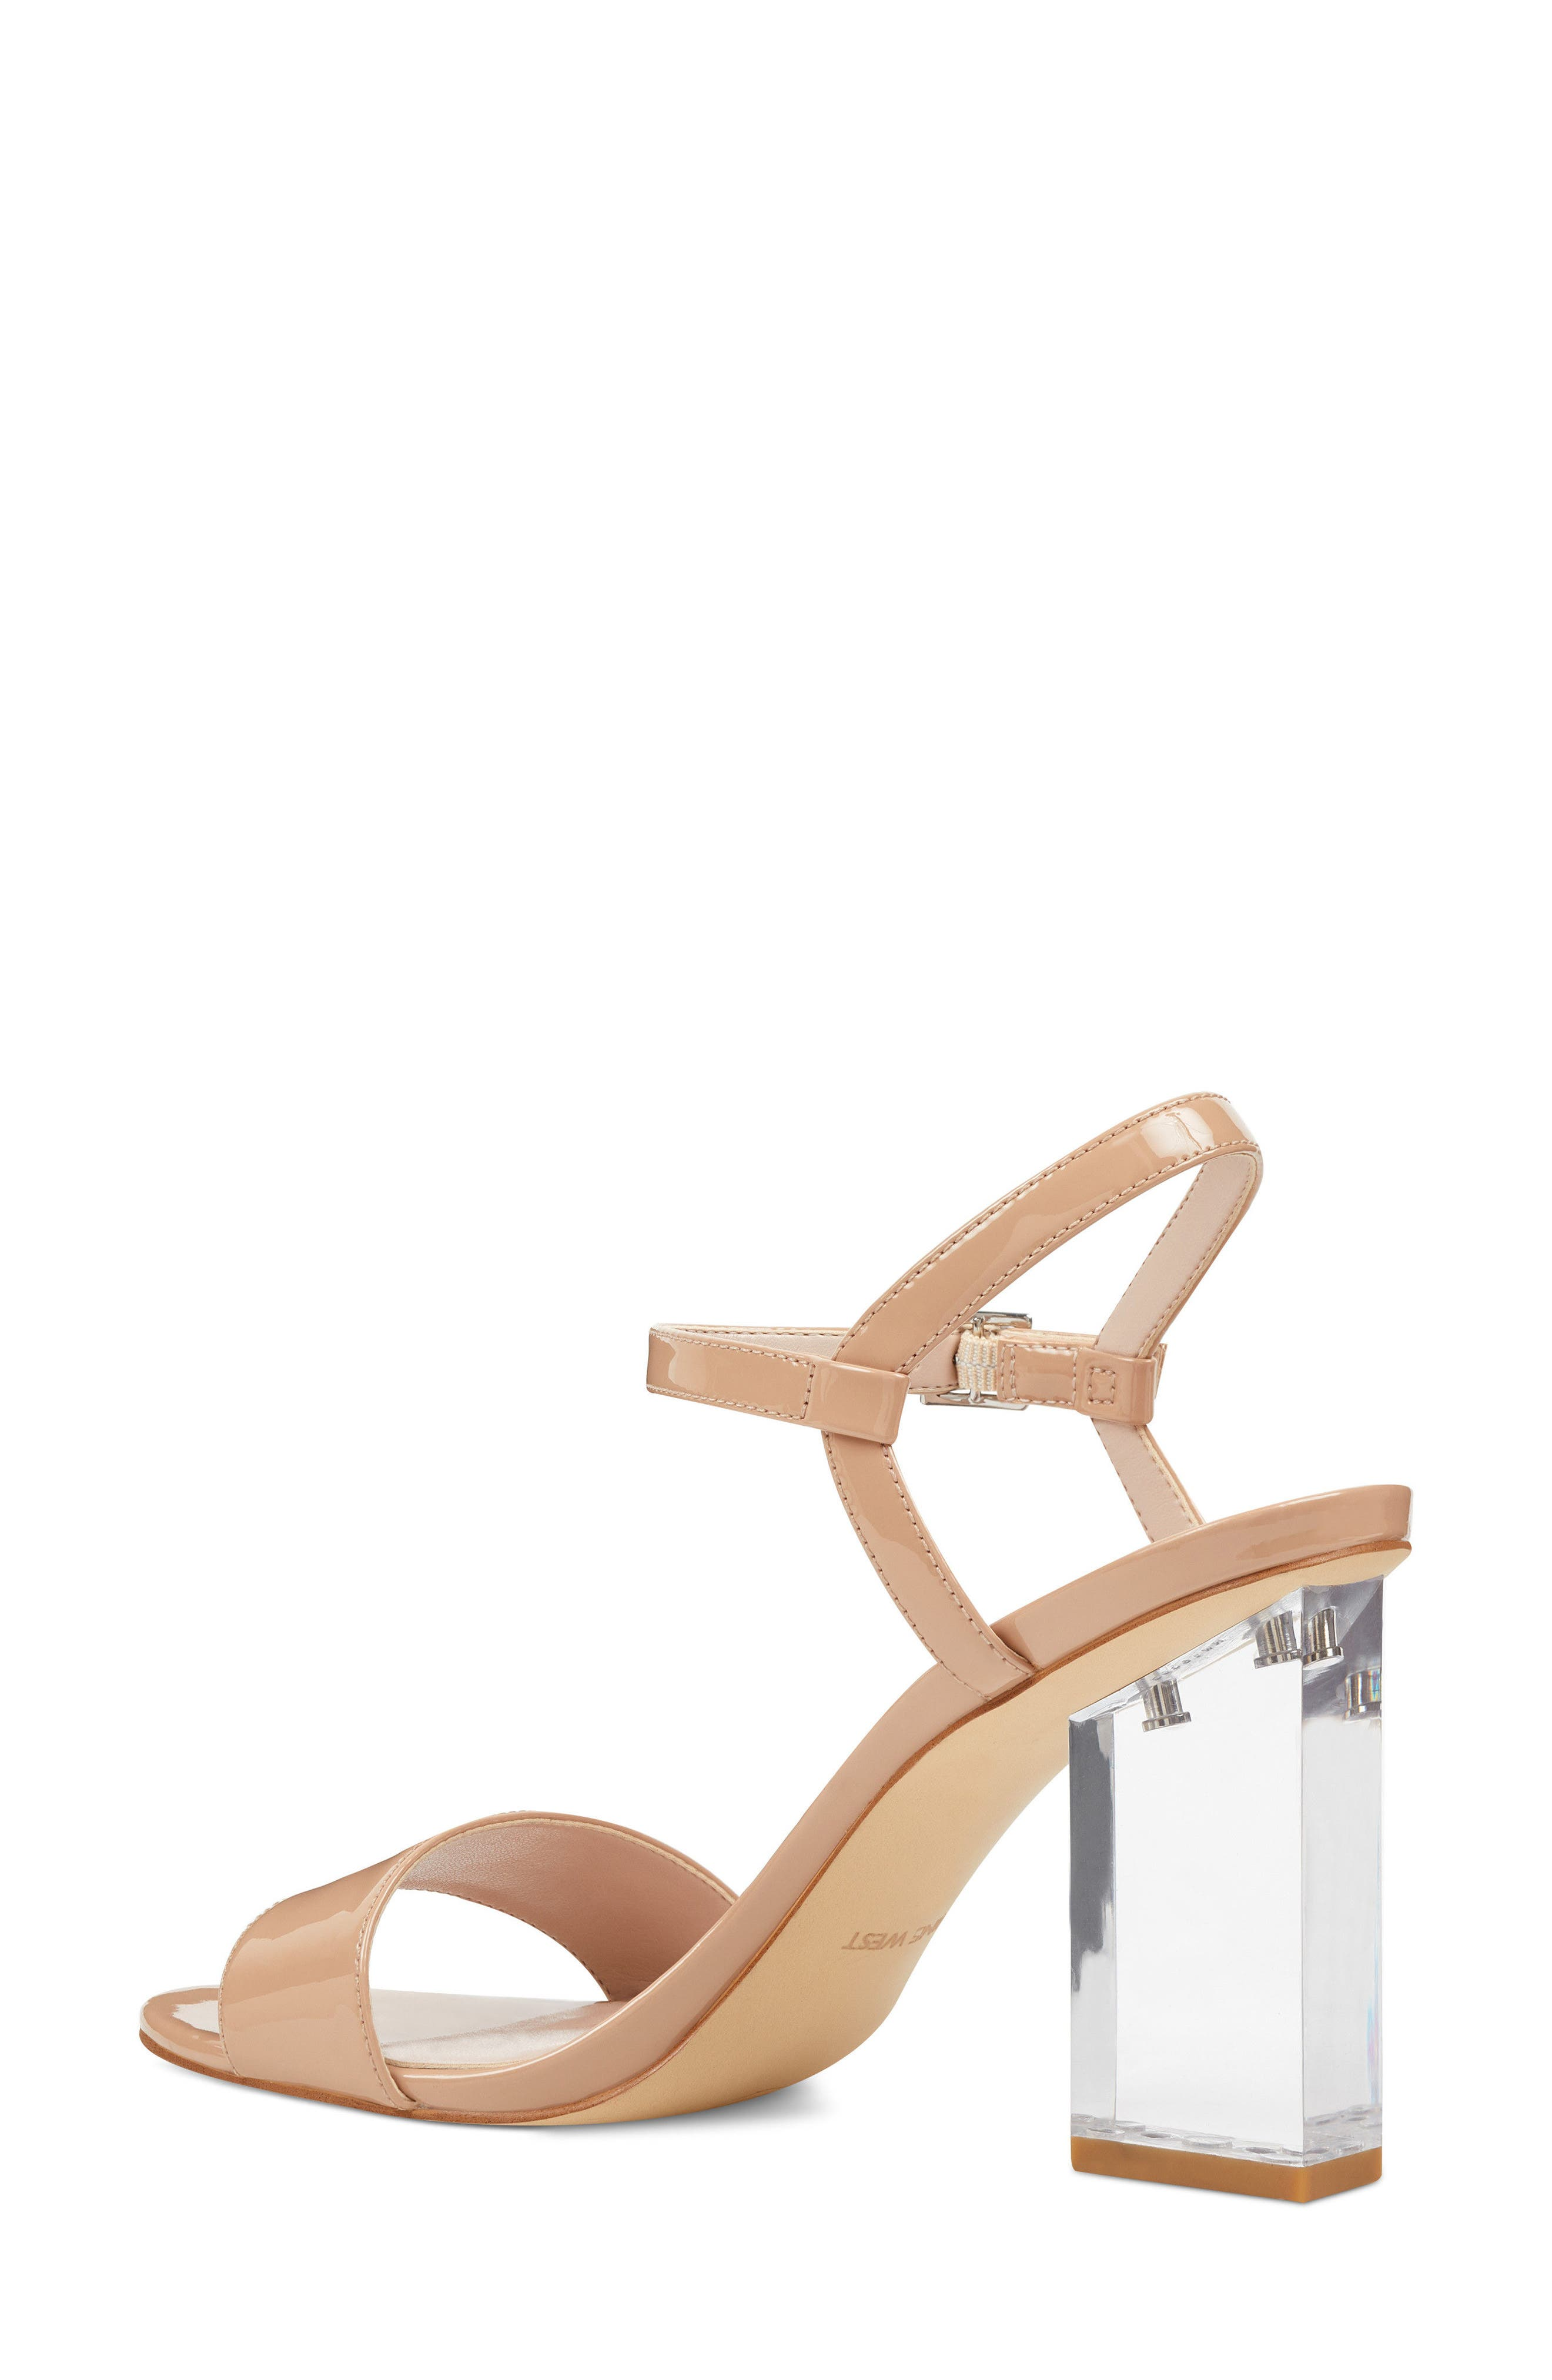 Feisty Ankle Strap Sandal,                             Alternate thumbnail 2, color,                             Nude Suede